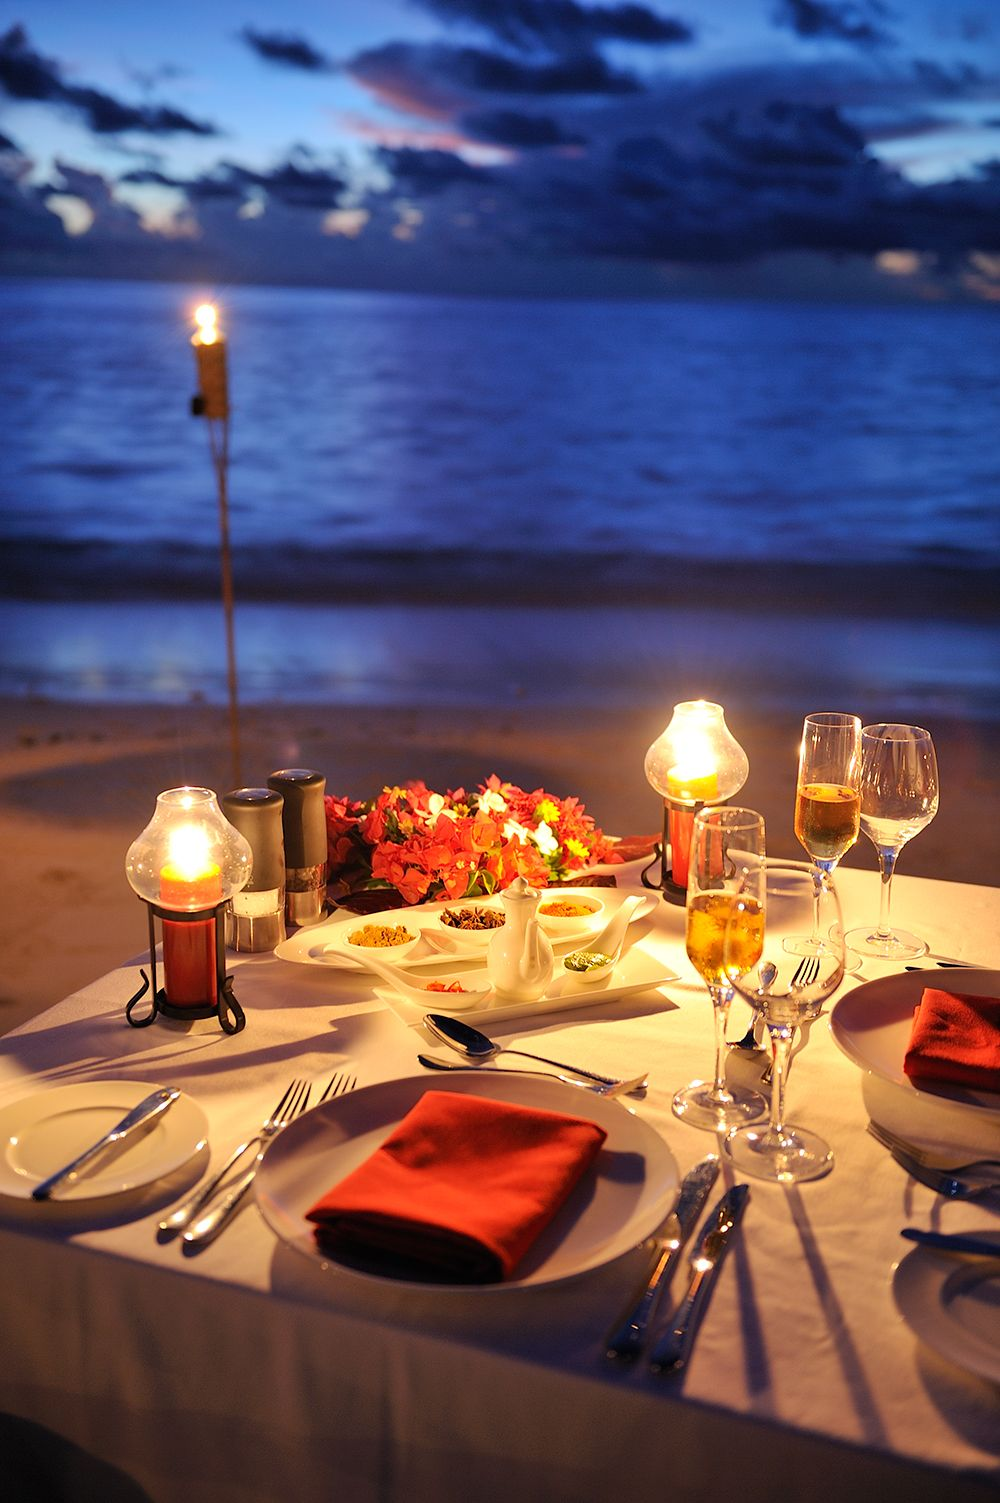 Romantic Room Setting: Set Up A Nice Table On The Beach With Candles And Torches